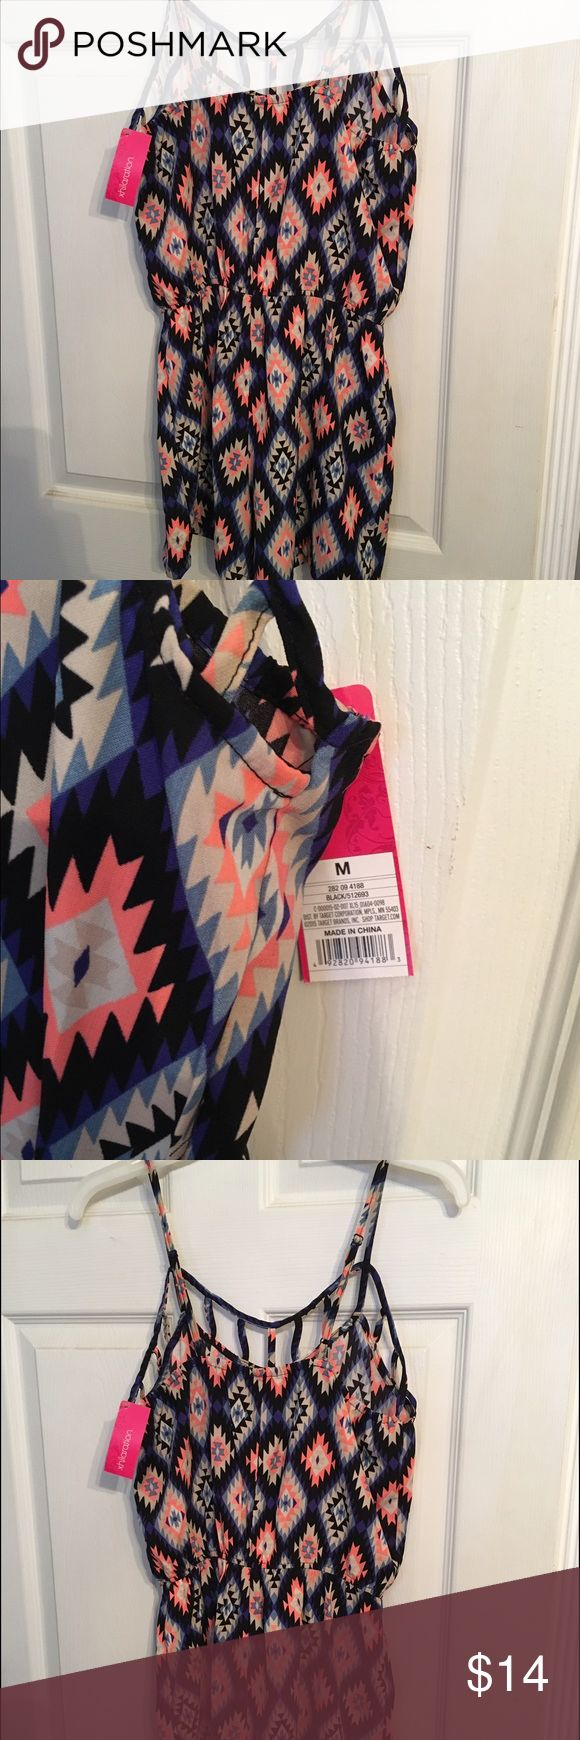 Target romper- NWT Target romper never worn! Would look cute with booties and a sweater for fall! Colors go with almost everything! Xhilaration Dresses Mini